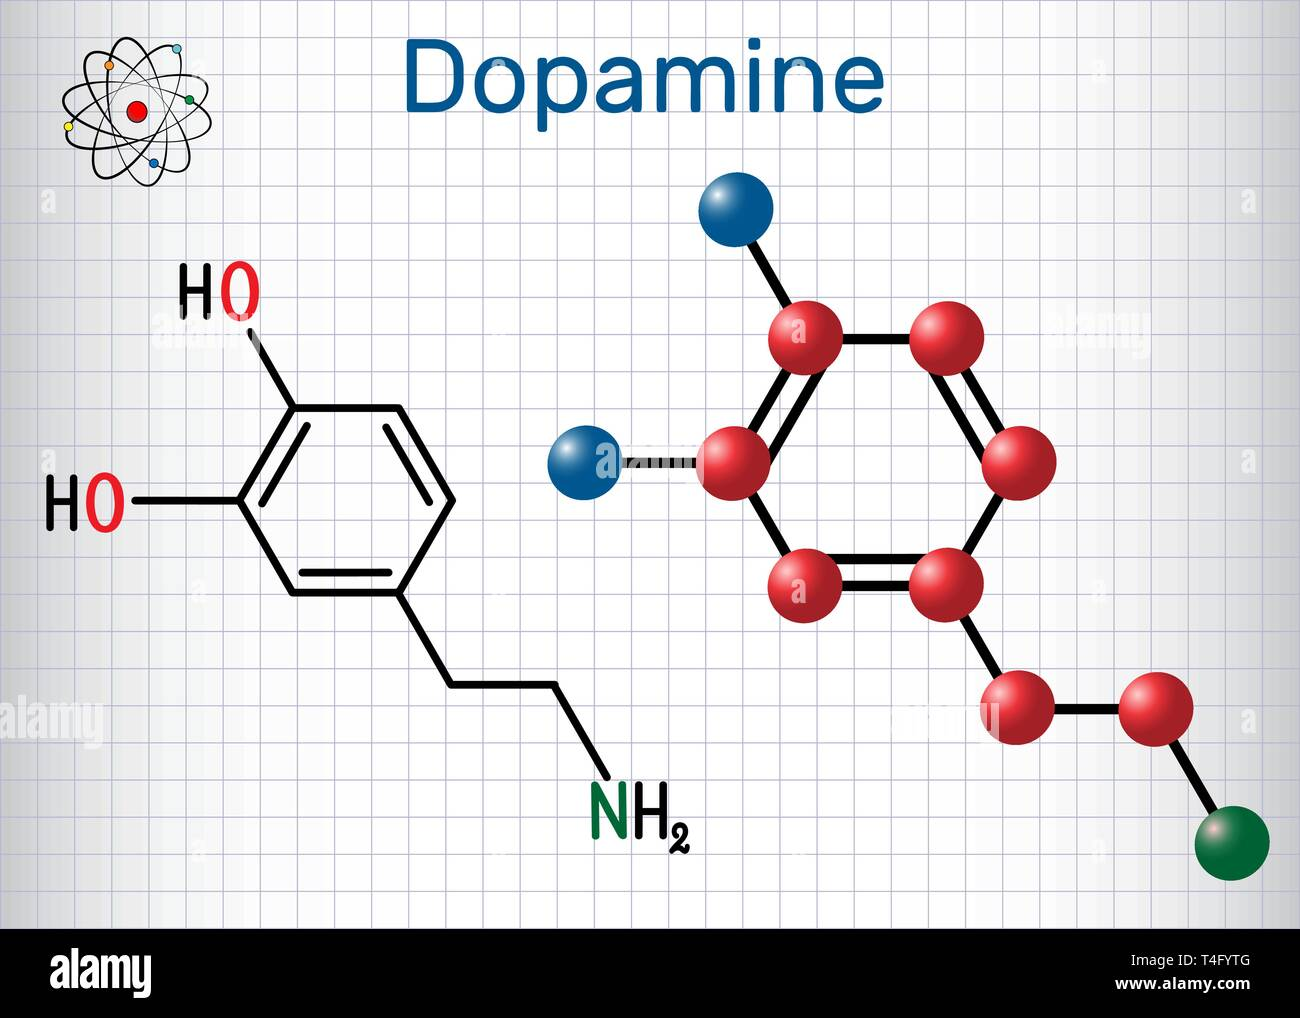 Dopamine ( DA) molecule. Structural chemical formula and molecule model. Sheet of paper in a cage. Vector illustration - Stock Image